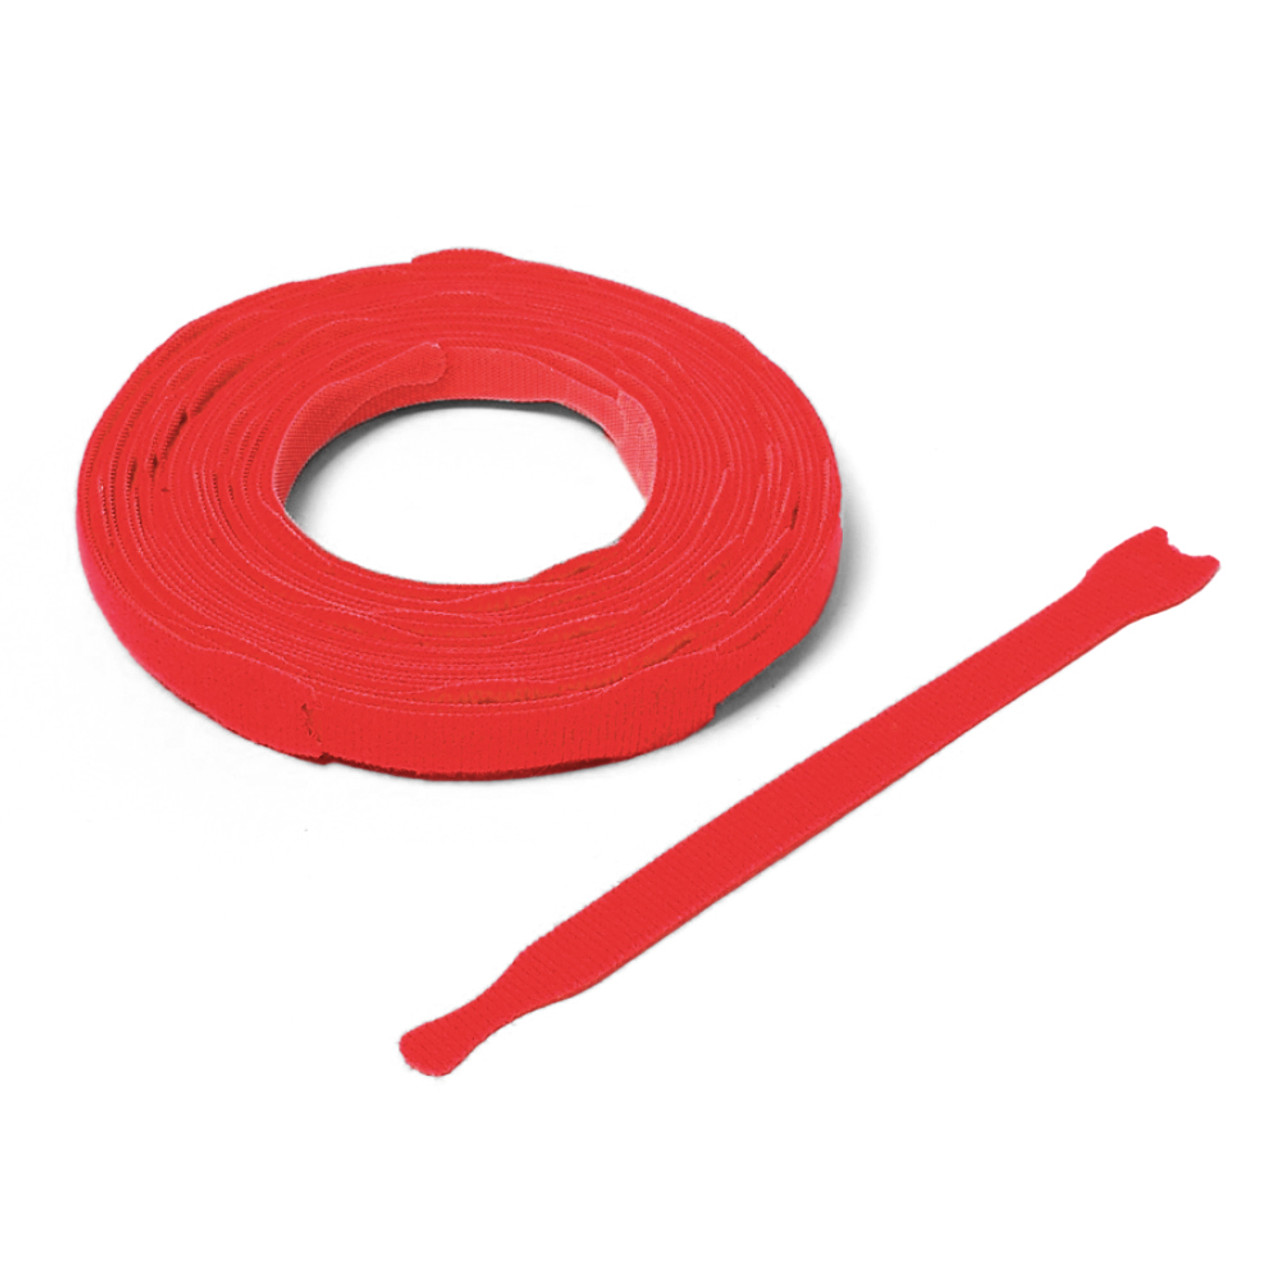 VELCRO ® Brand ONE-WRAP ® Die-Cut Straps - Red  / Velcro Straps - Bundling Straps - Velcro Tie - Velcro Strap